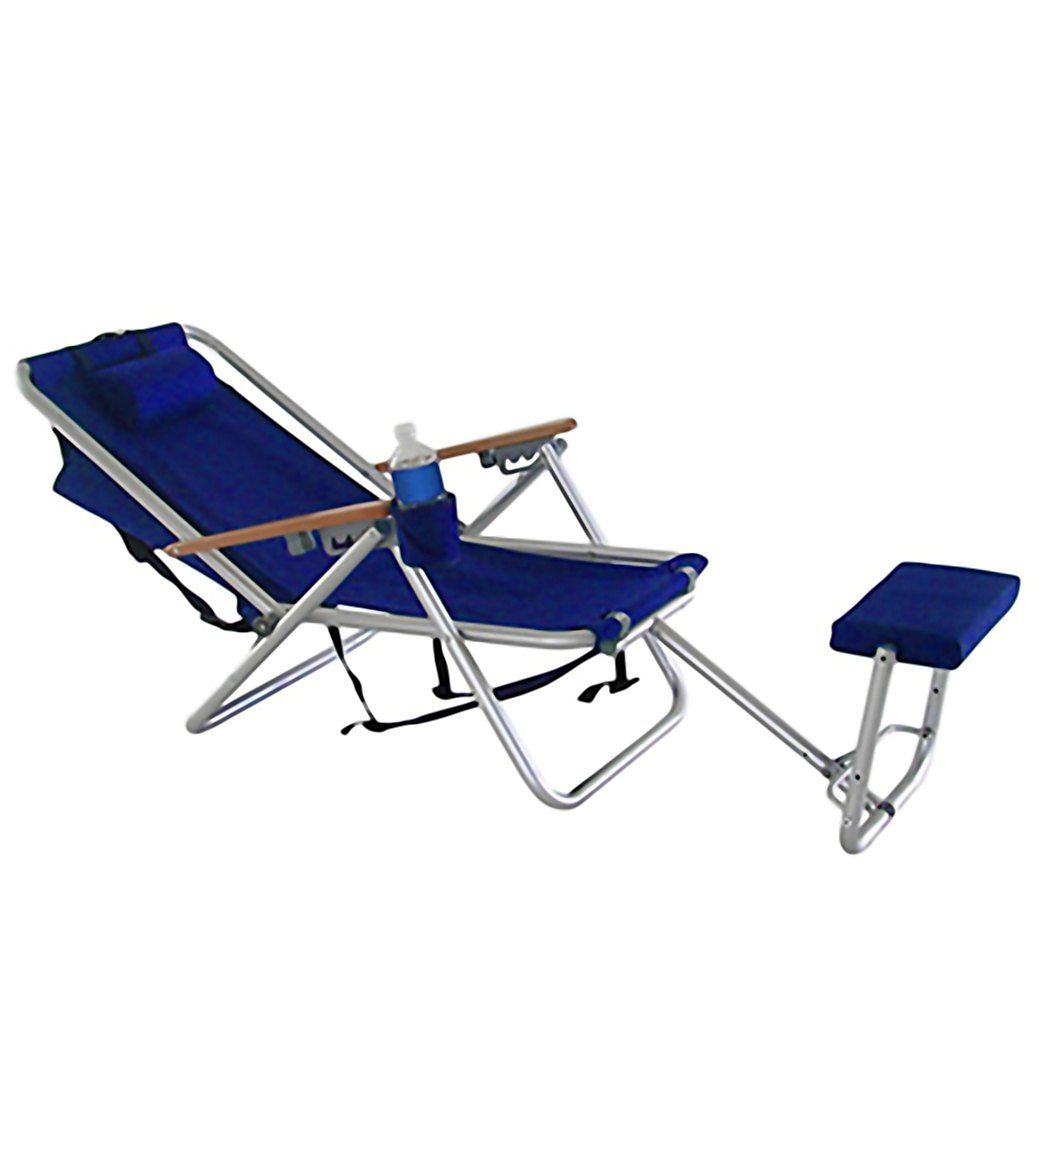 Wearever backpack chair - Wearever Steel Frame Backpack Chair With Footrest Wet Pro